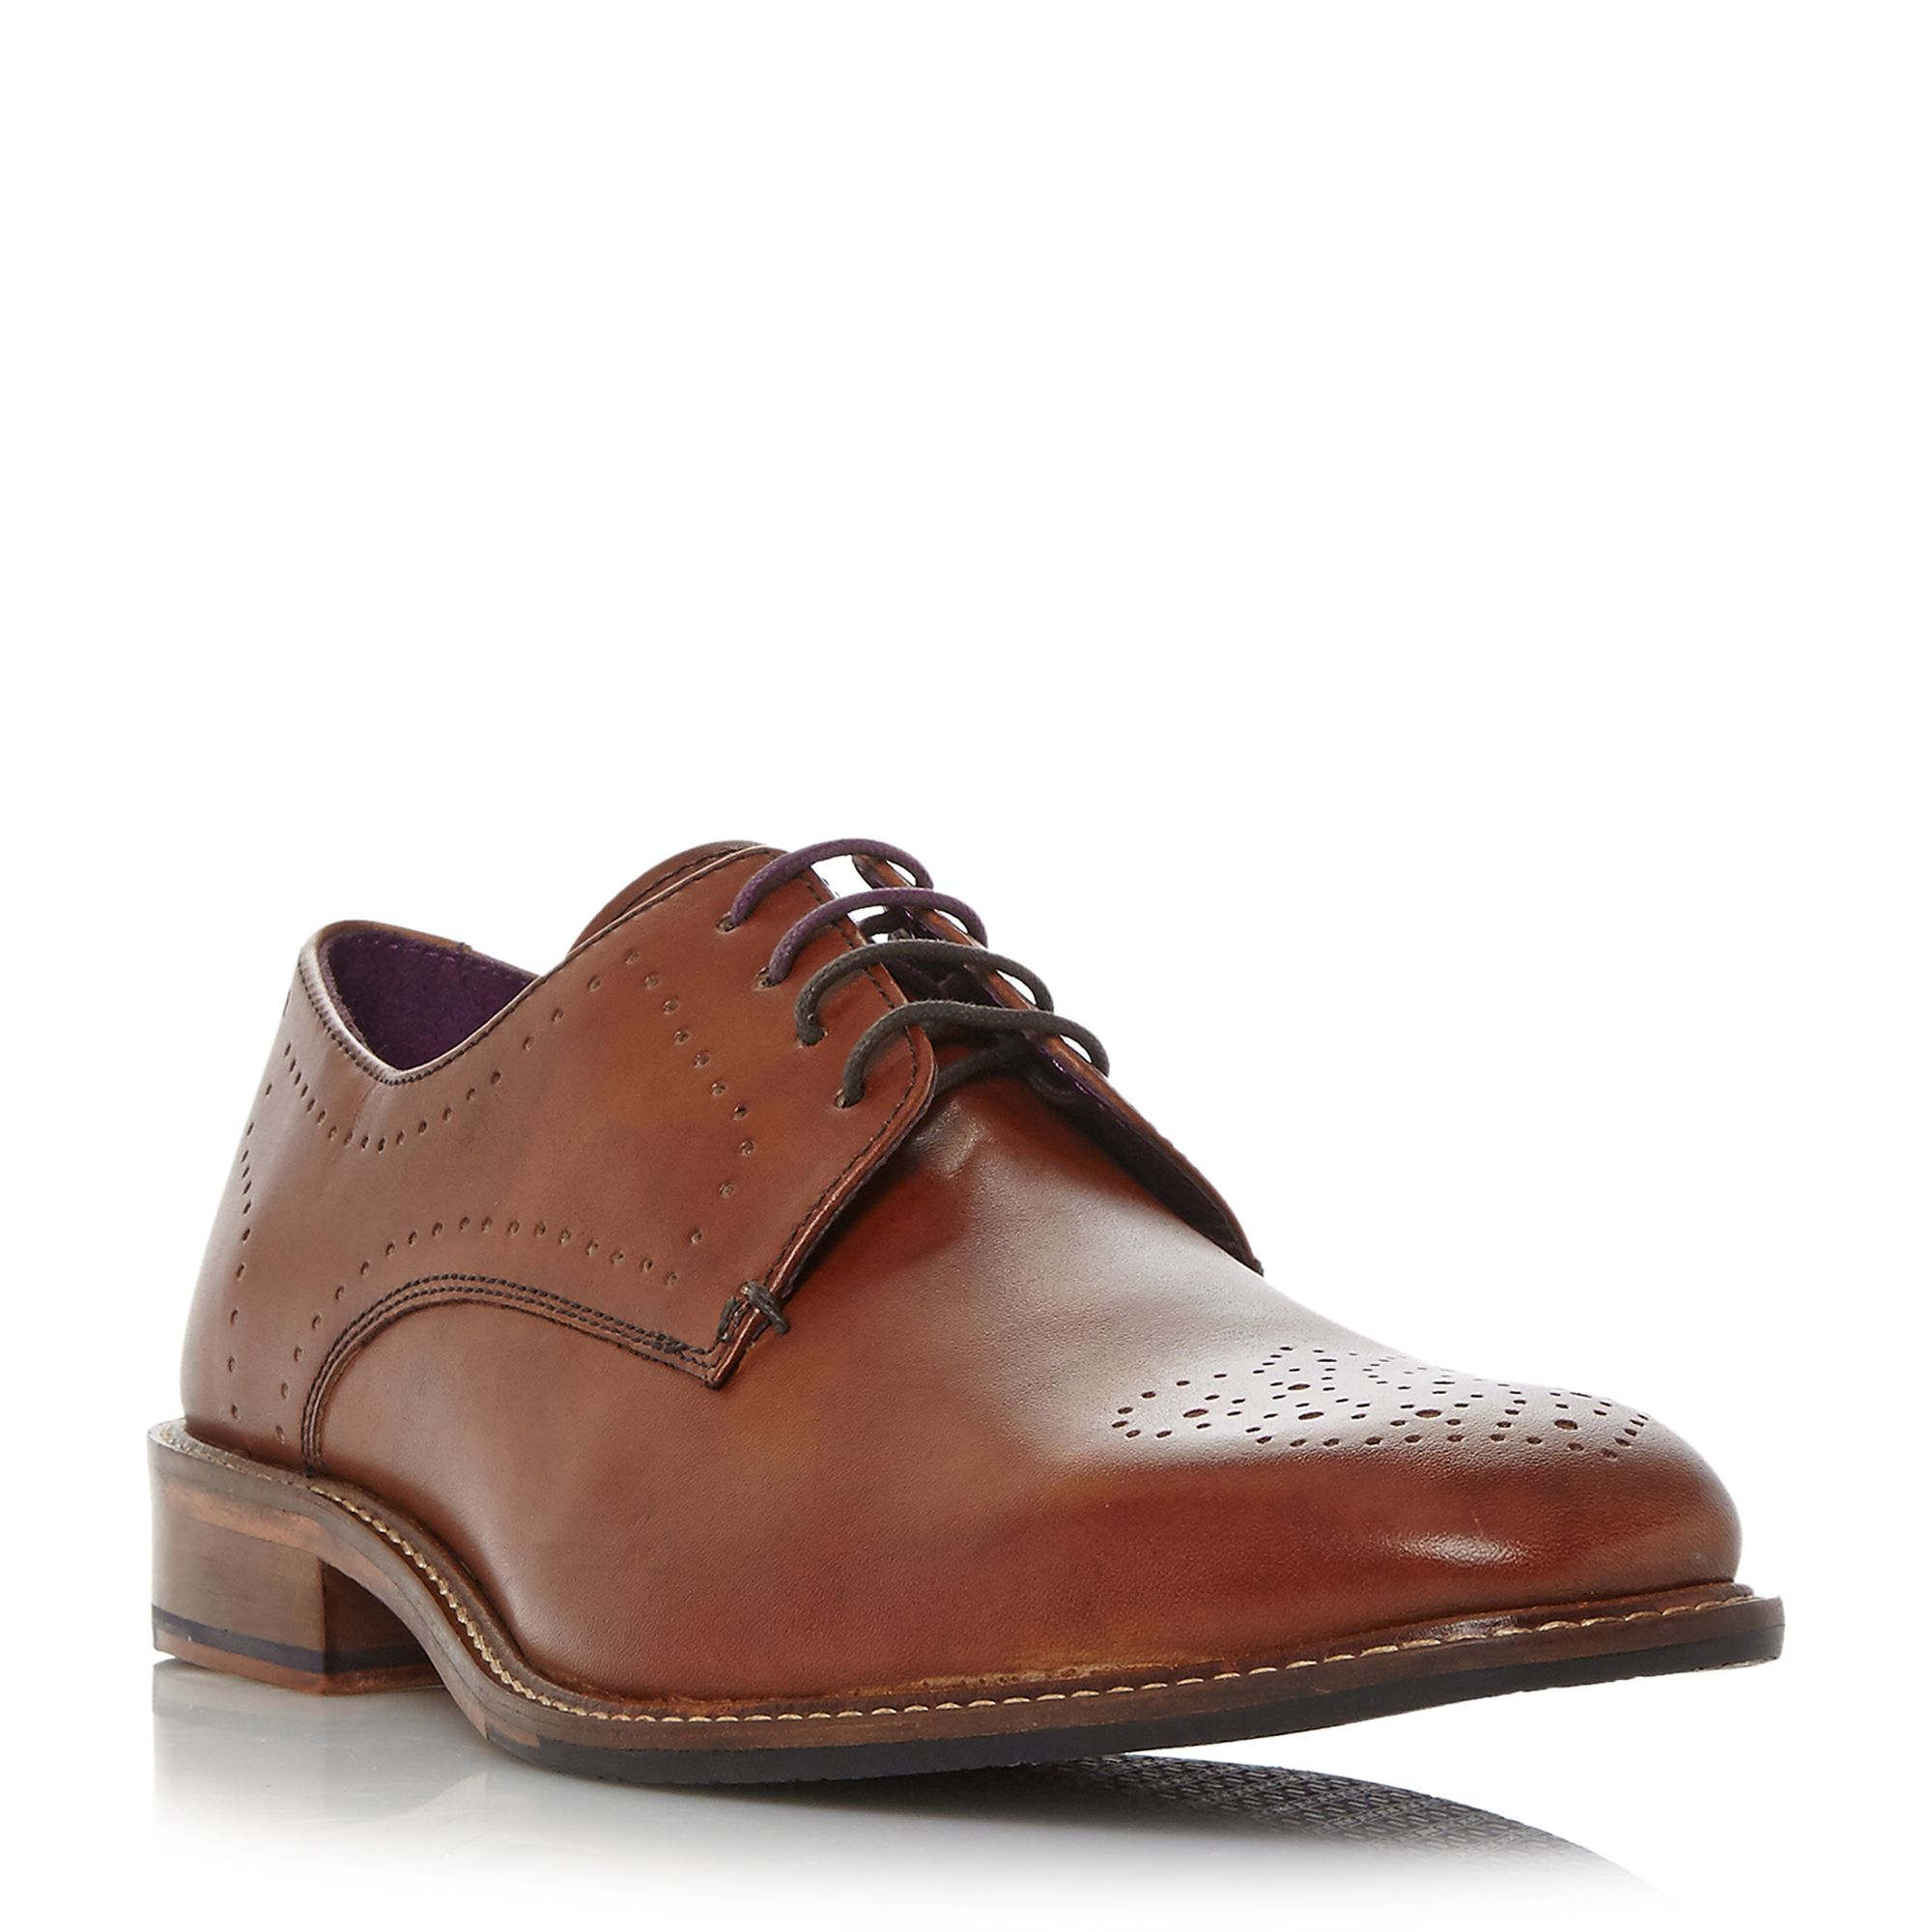 Ted Baker Marar punched derby formal shoes Tan